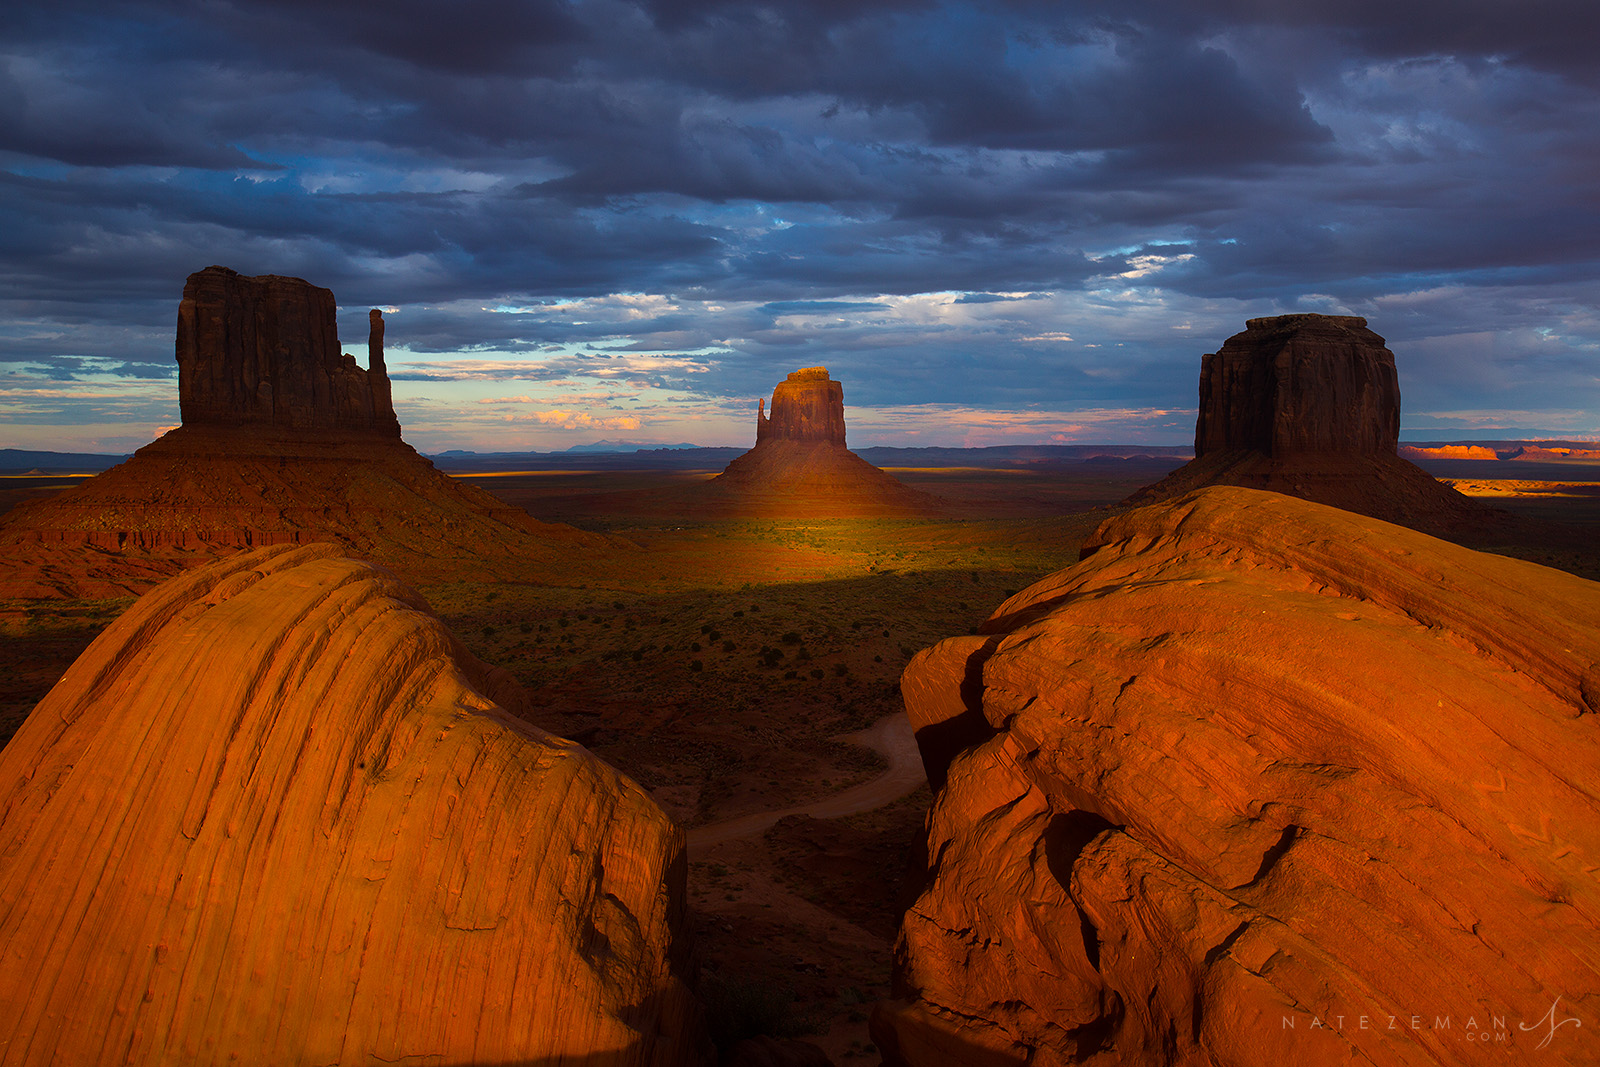 monument valley, arizona, east mitten, sunset, photograph, landscape, photo